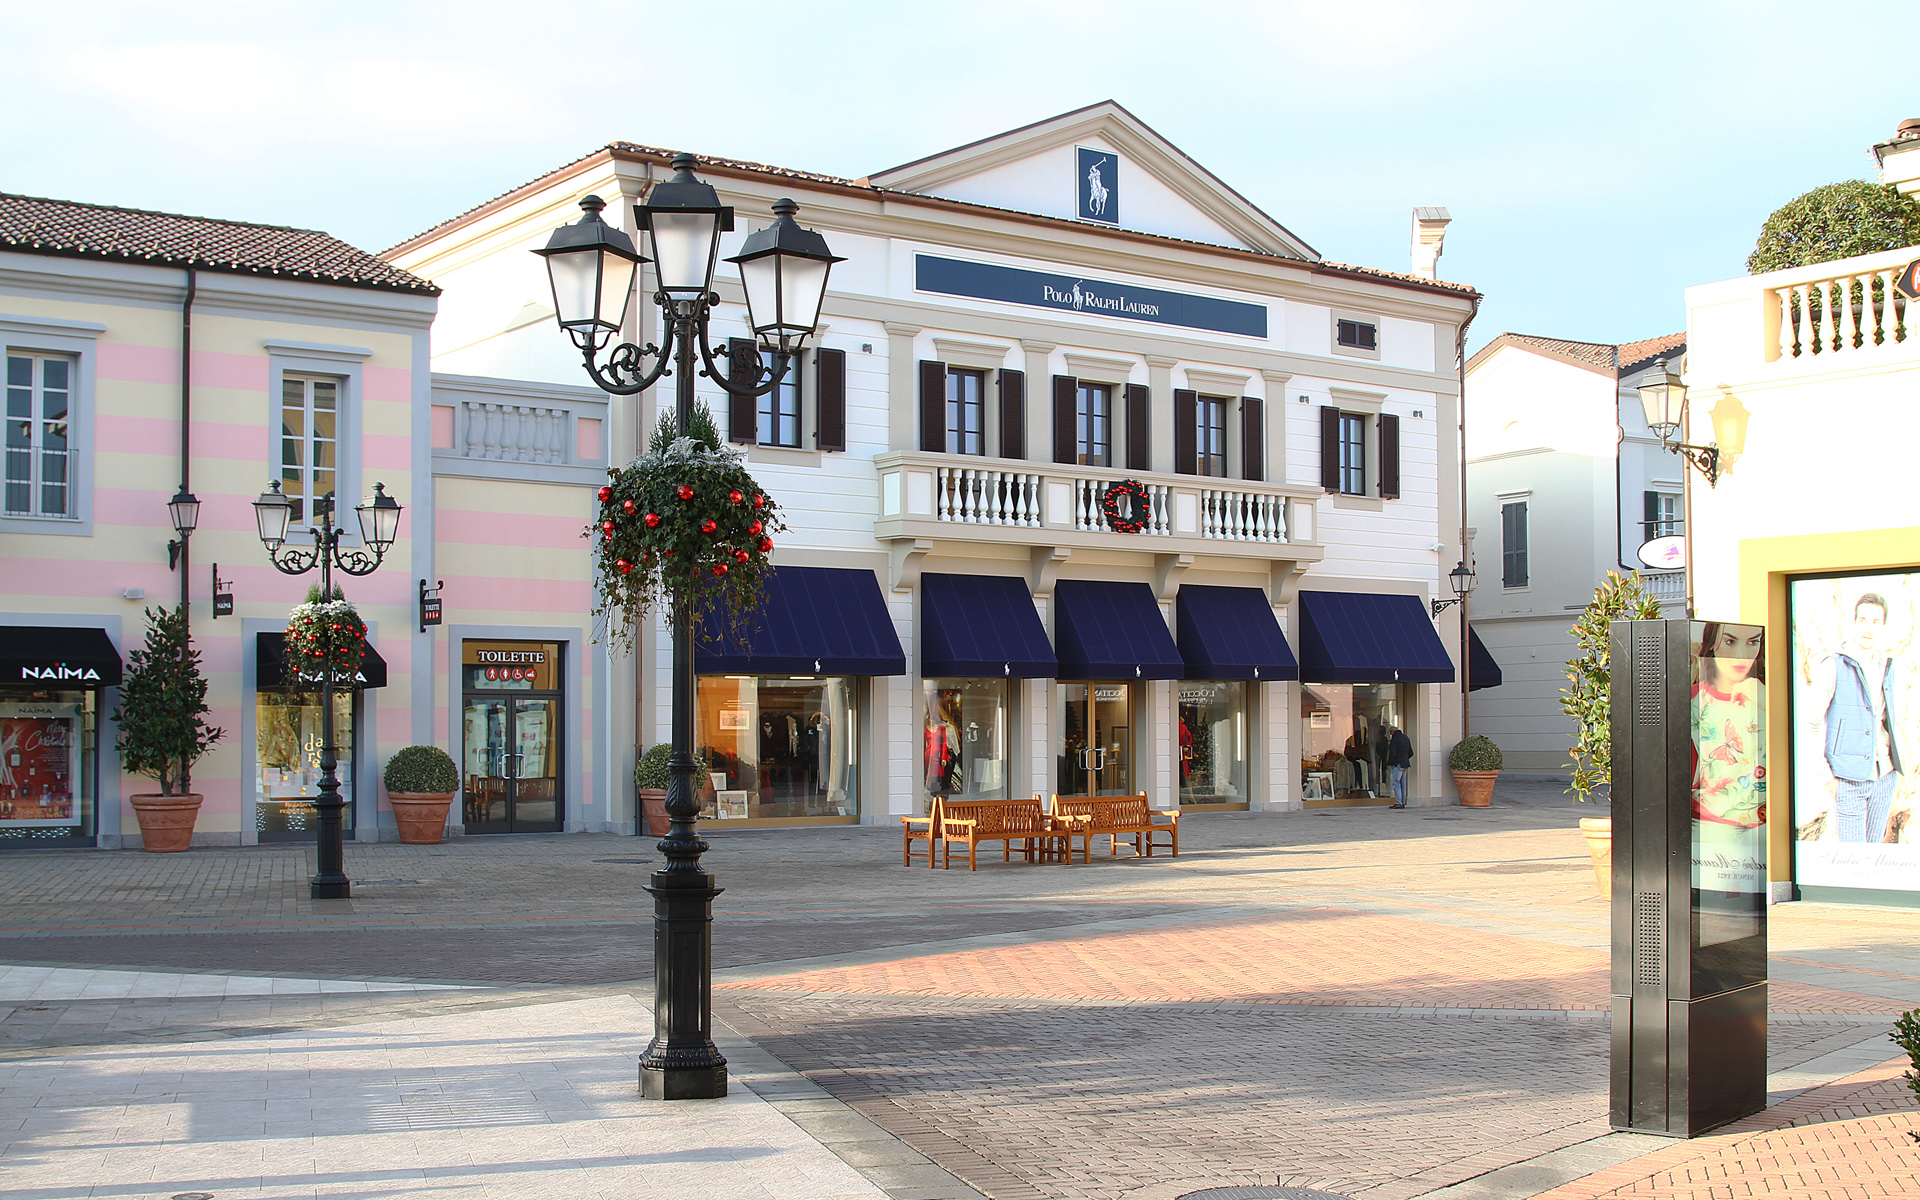 McArthurGlen Designer Outlet | R&P Engineering